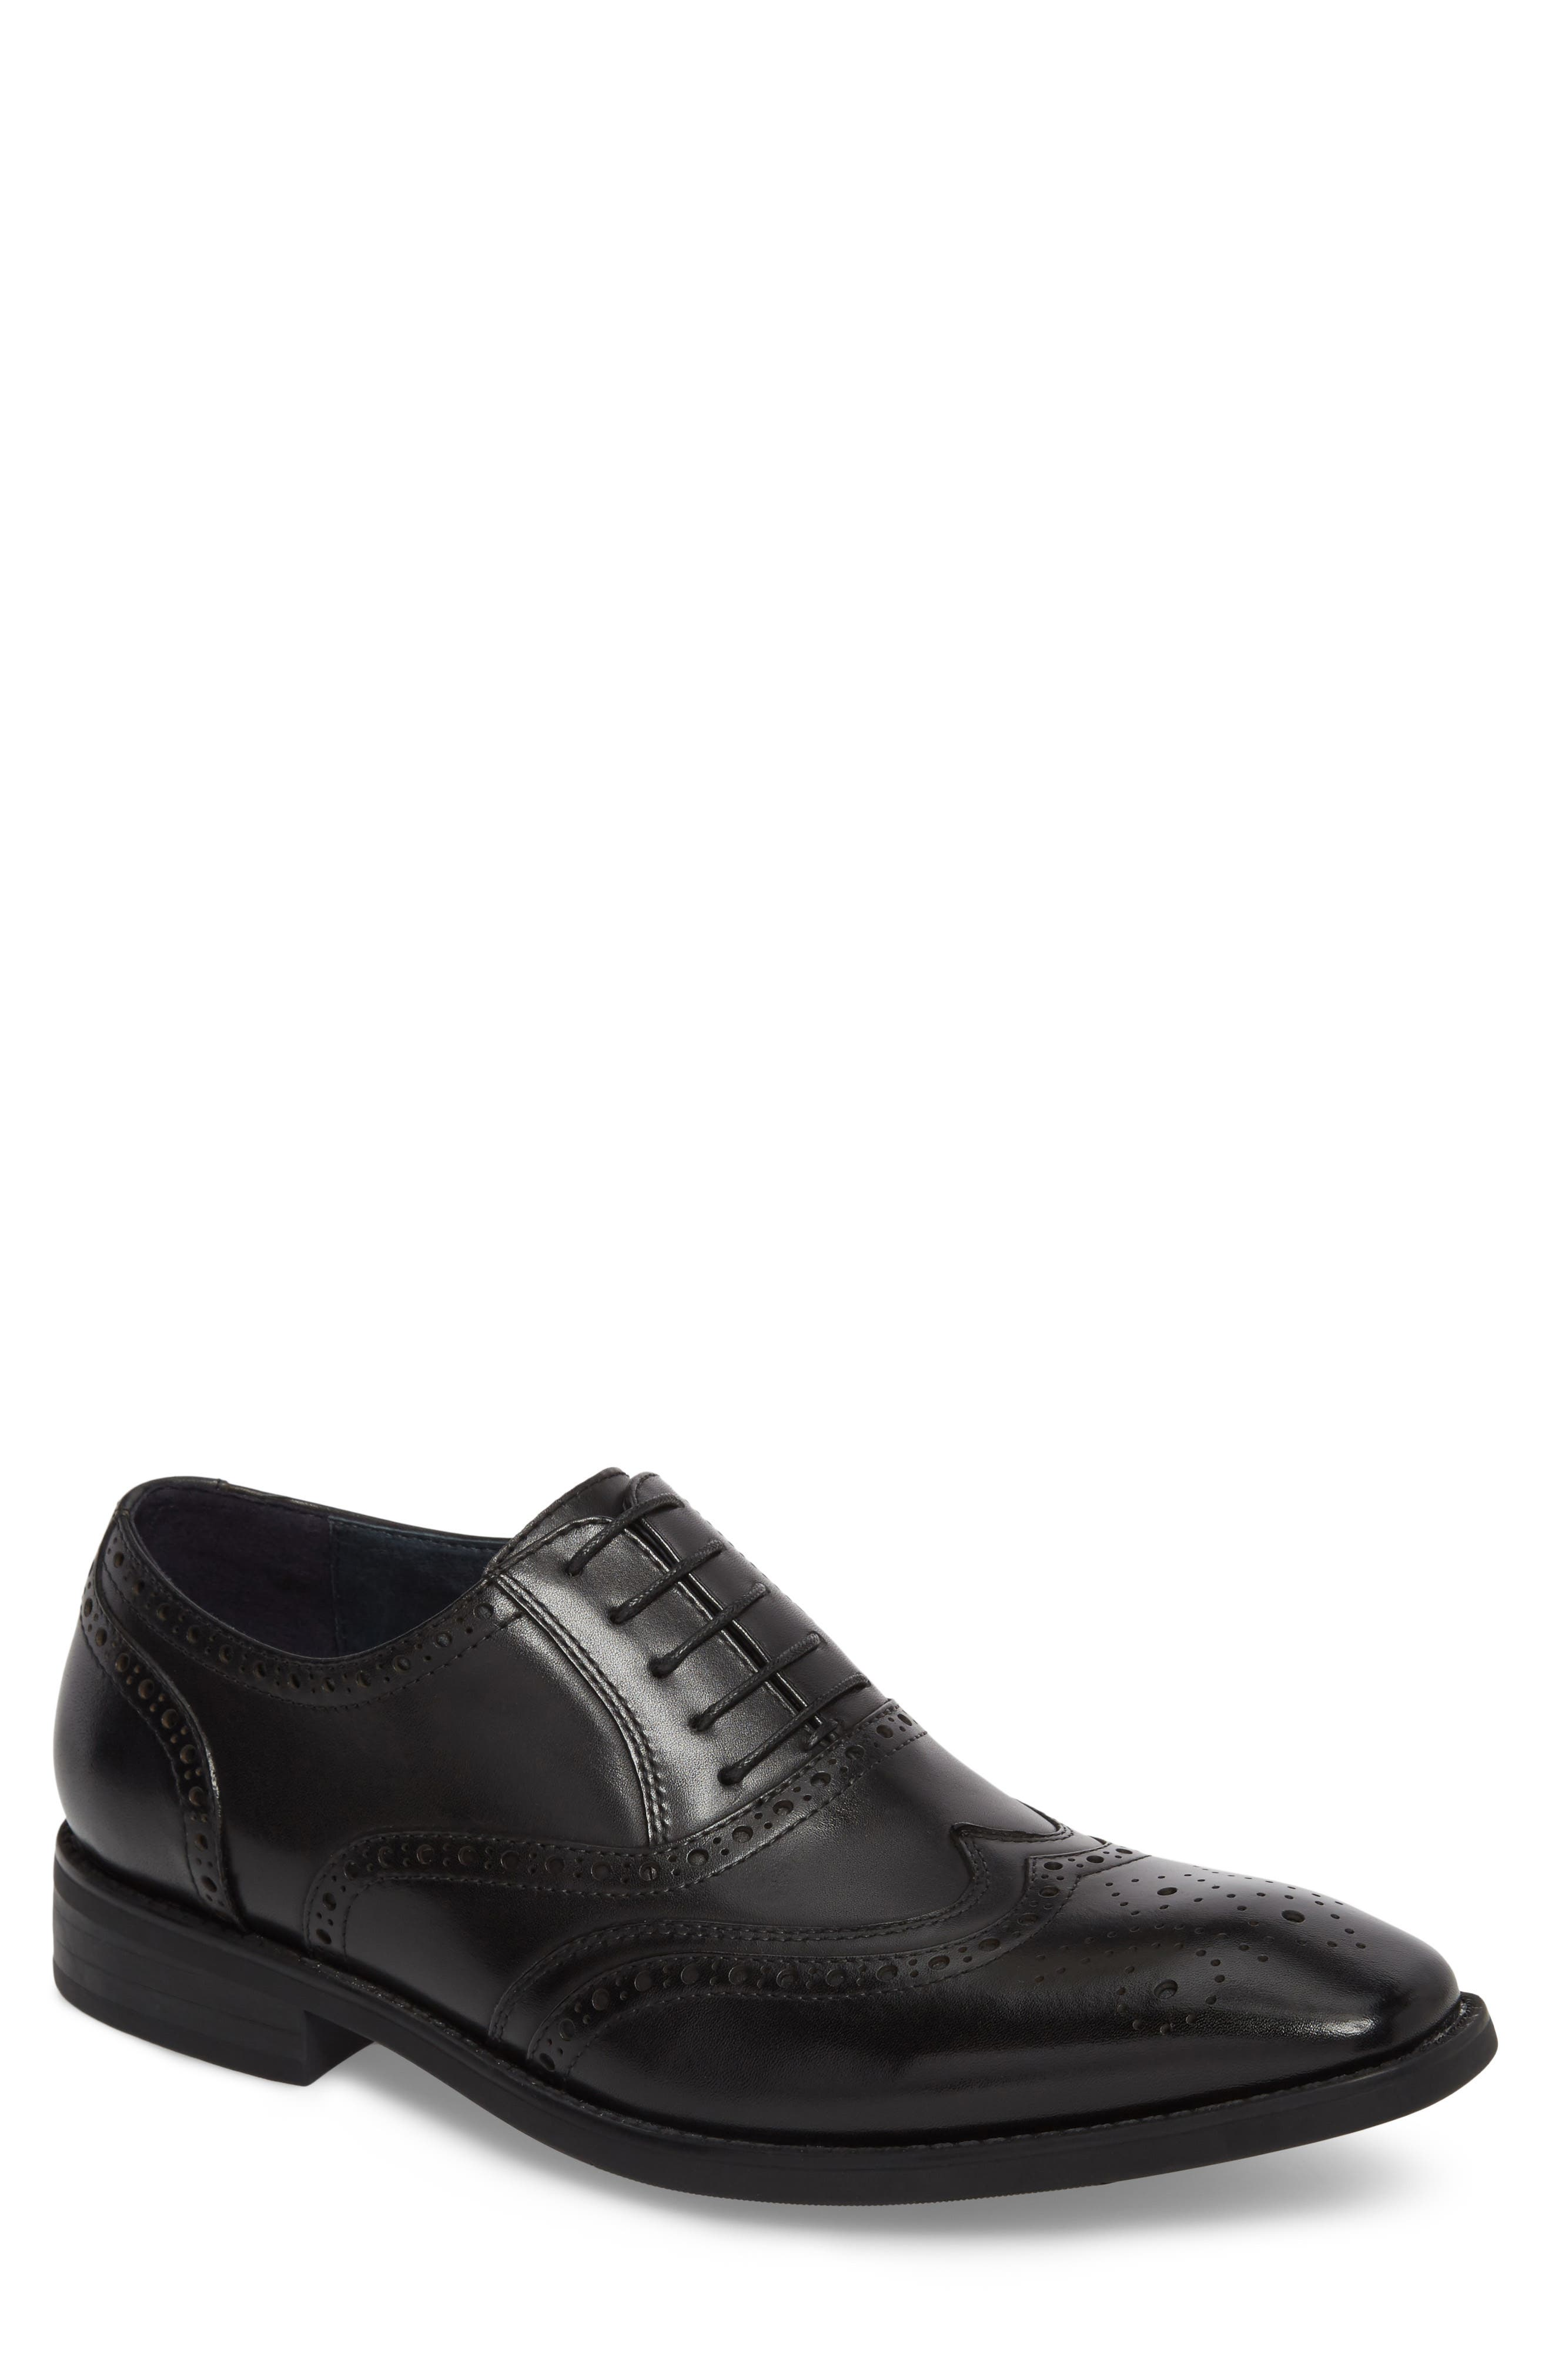 JUMP, Lindsey Wingtip, Main thumbnail 1, color, BLACK LEATHER